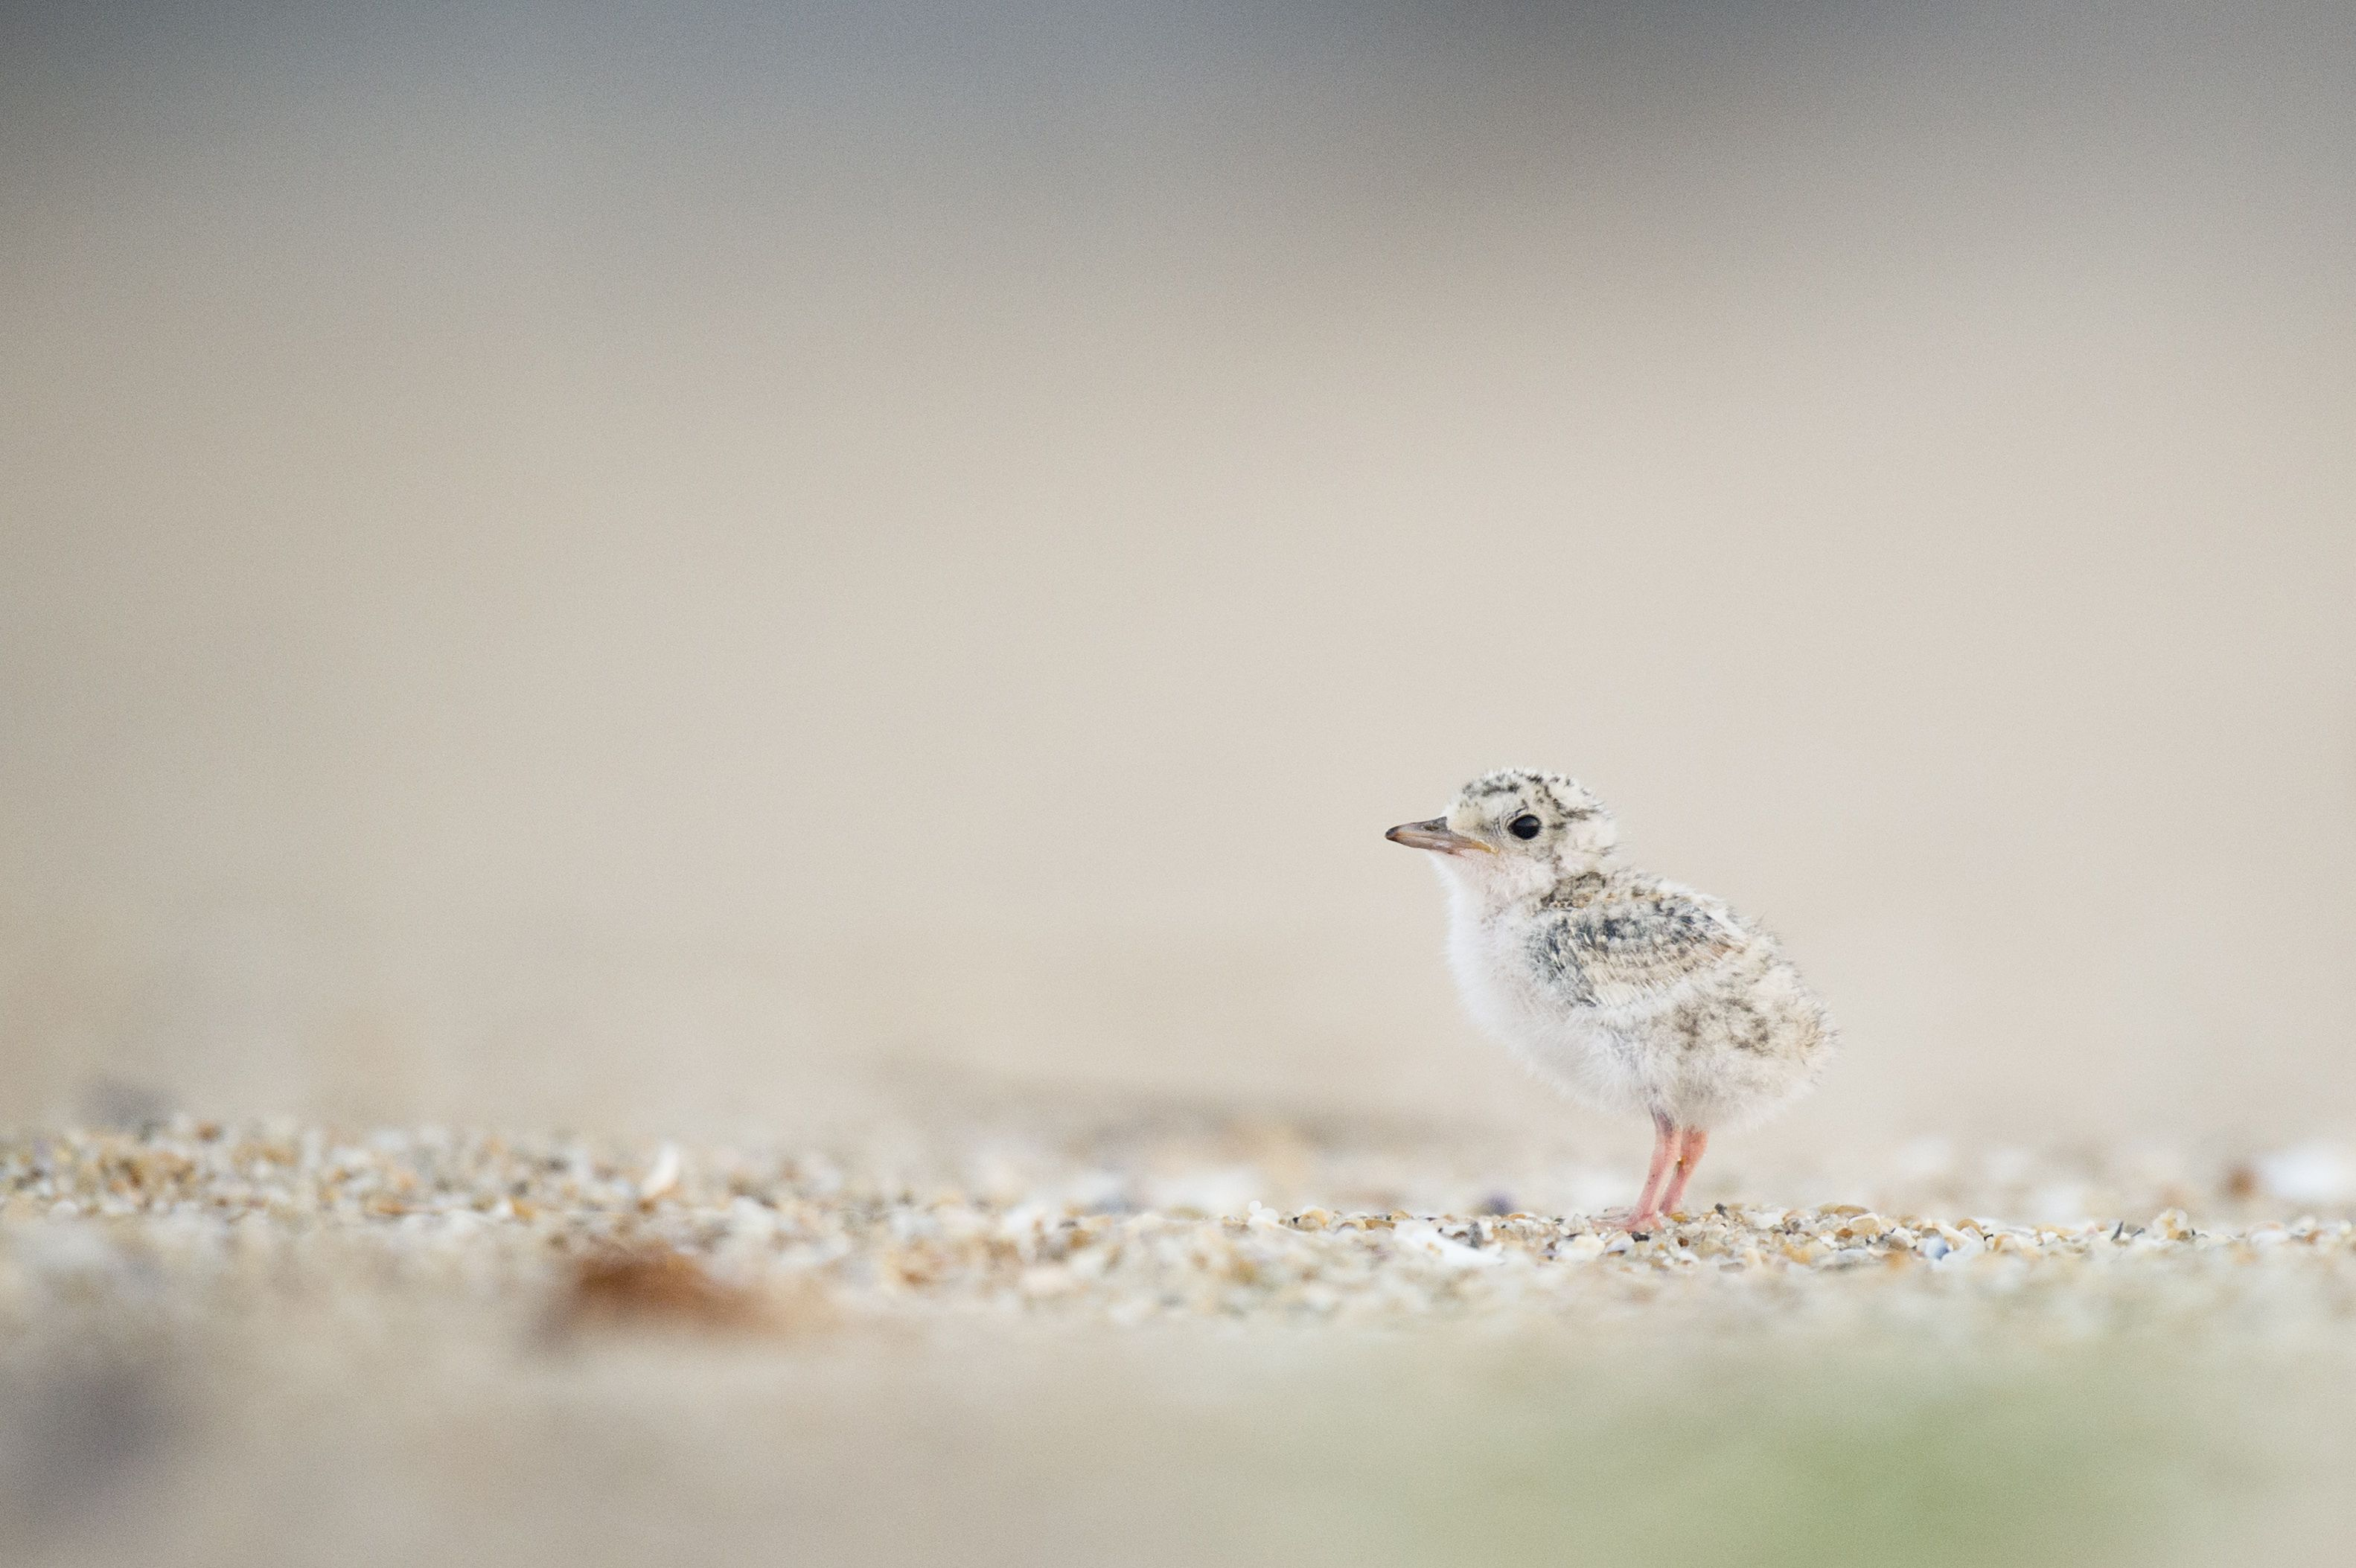 A lone least tern chick is on the beach.